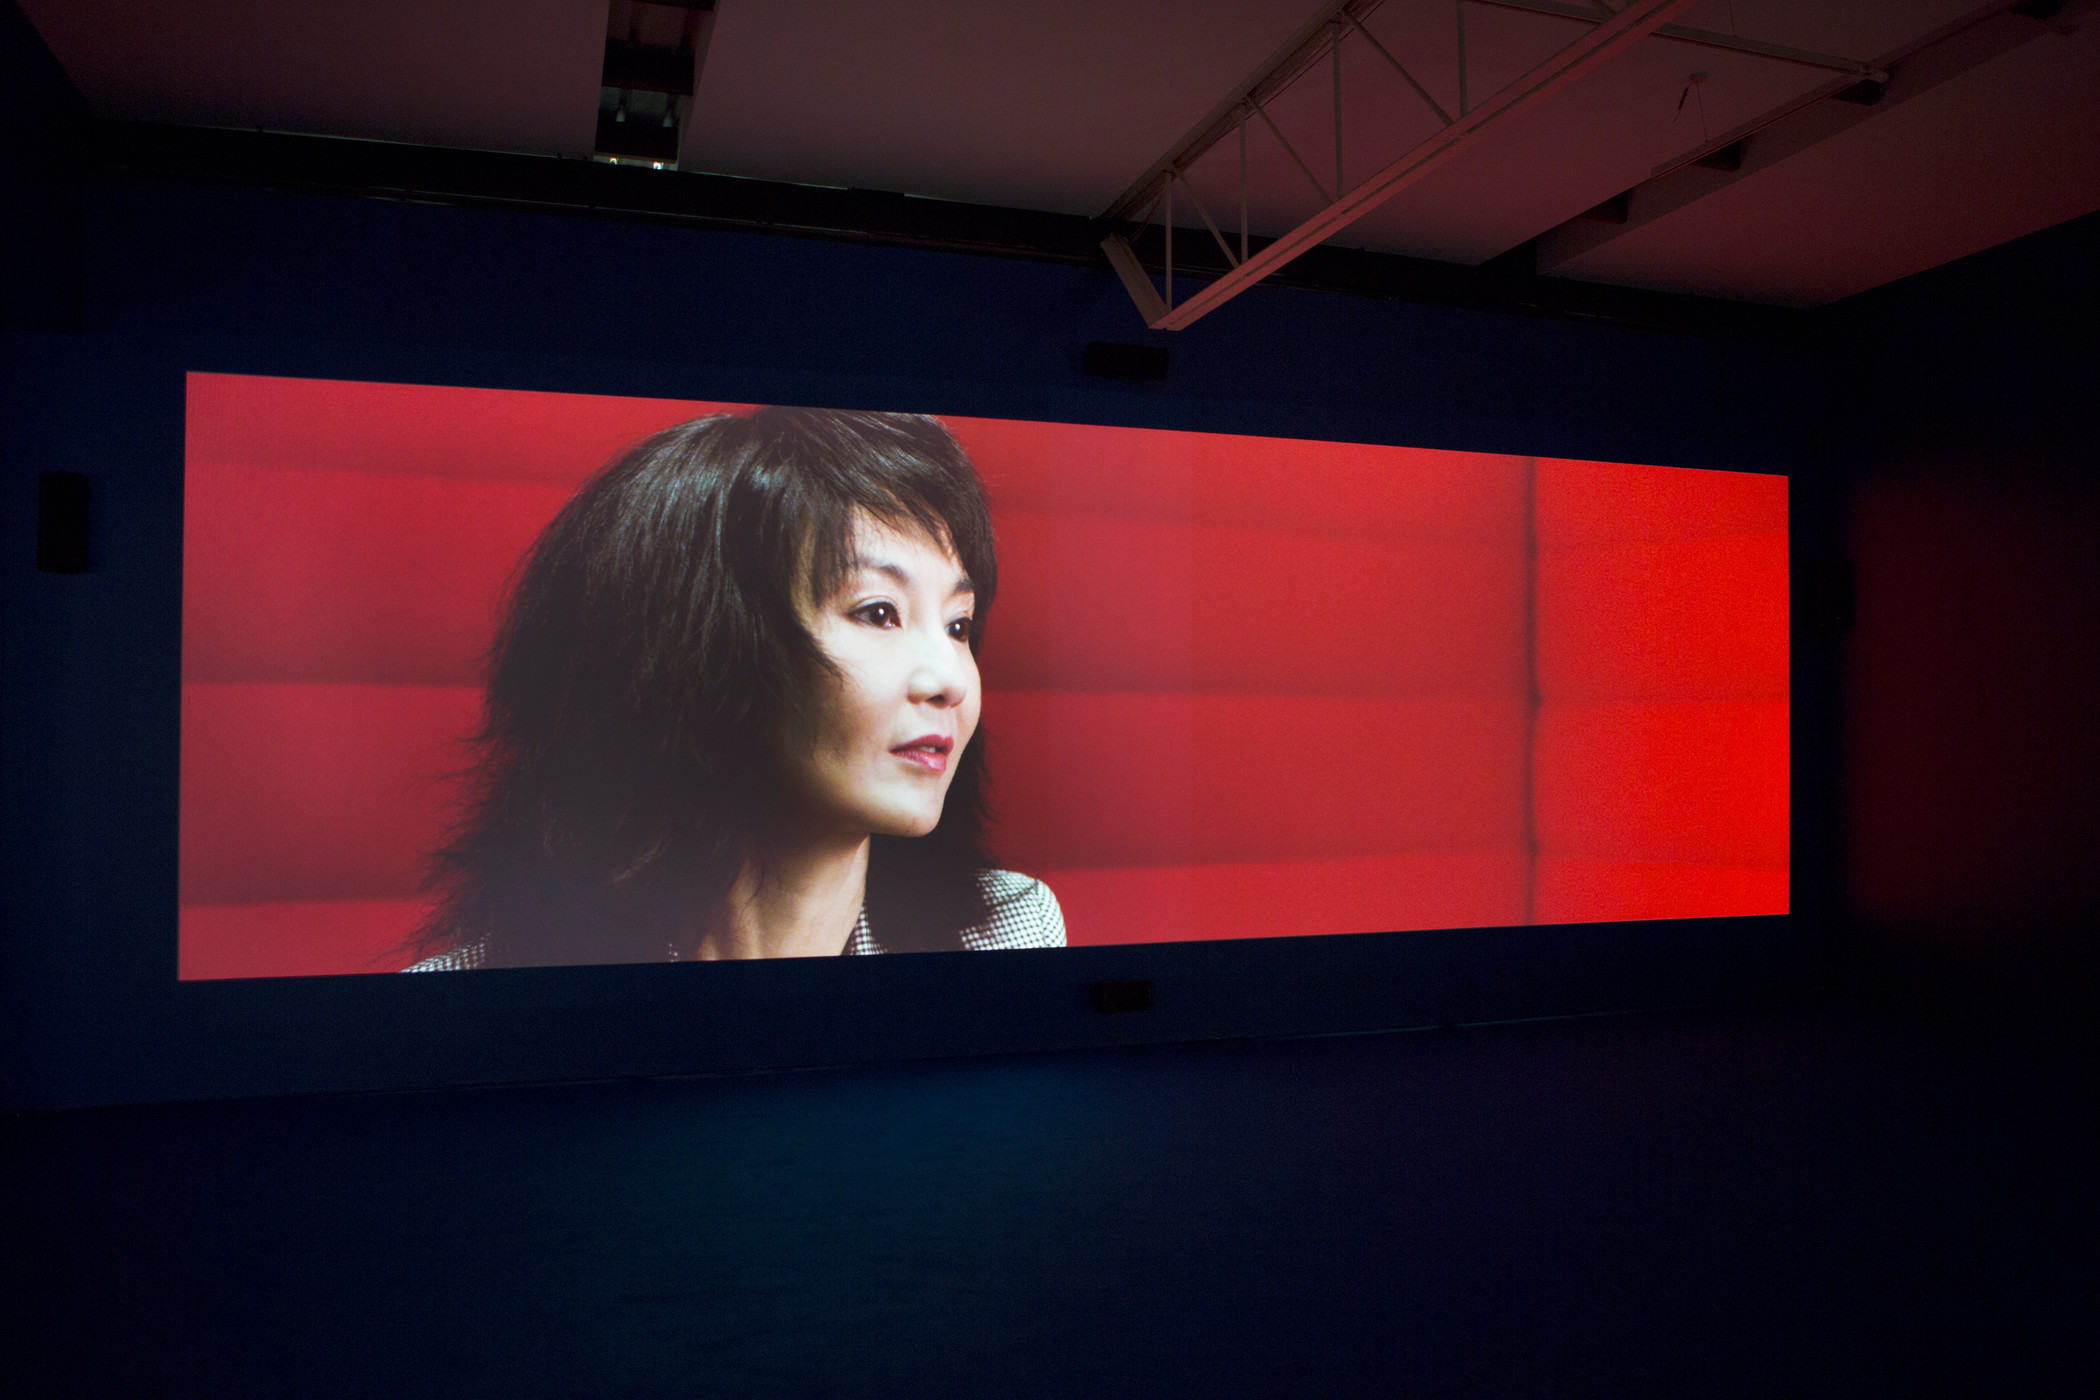 Isaac Julien, PLAYTIME, 2013, Los Angeles County Museum of Art, gift of Sheridan Brown, installation view, Roslyn Oxley9 Gallery, Sydney, 2013, © Isaac Julien, photo courtesy the artist